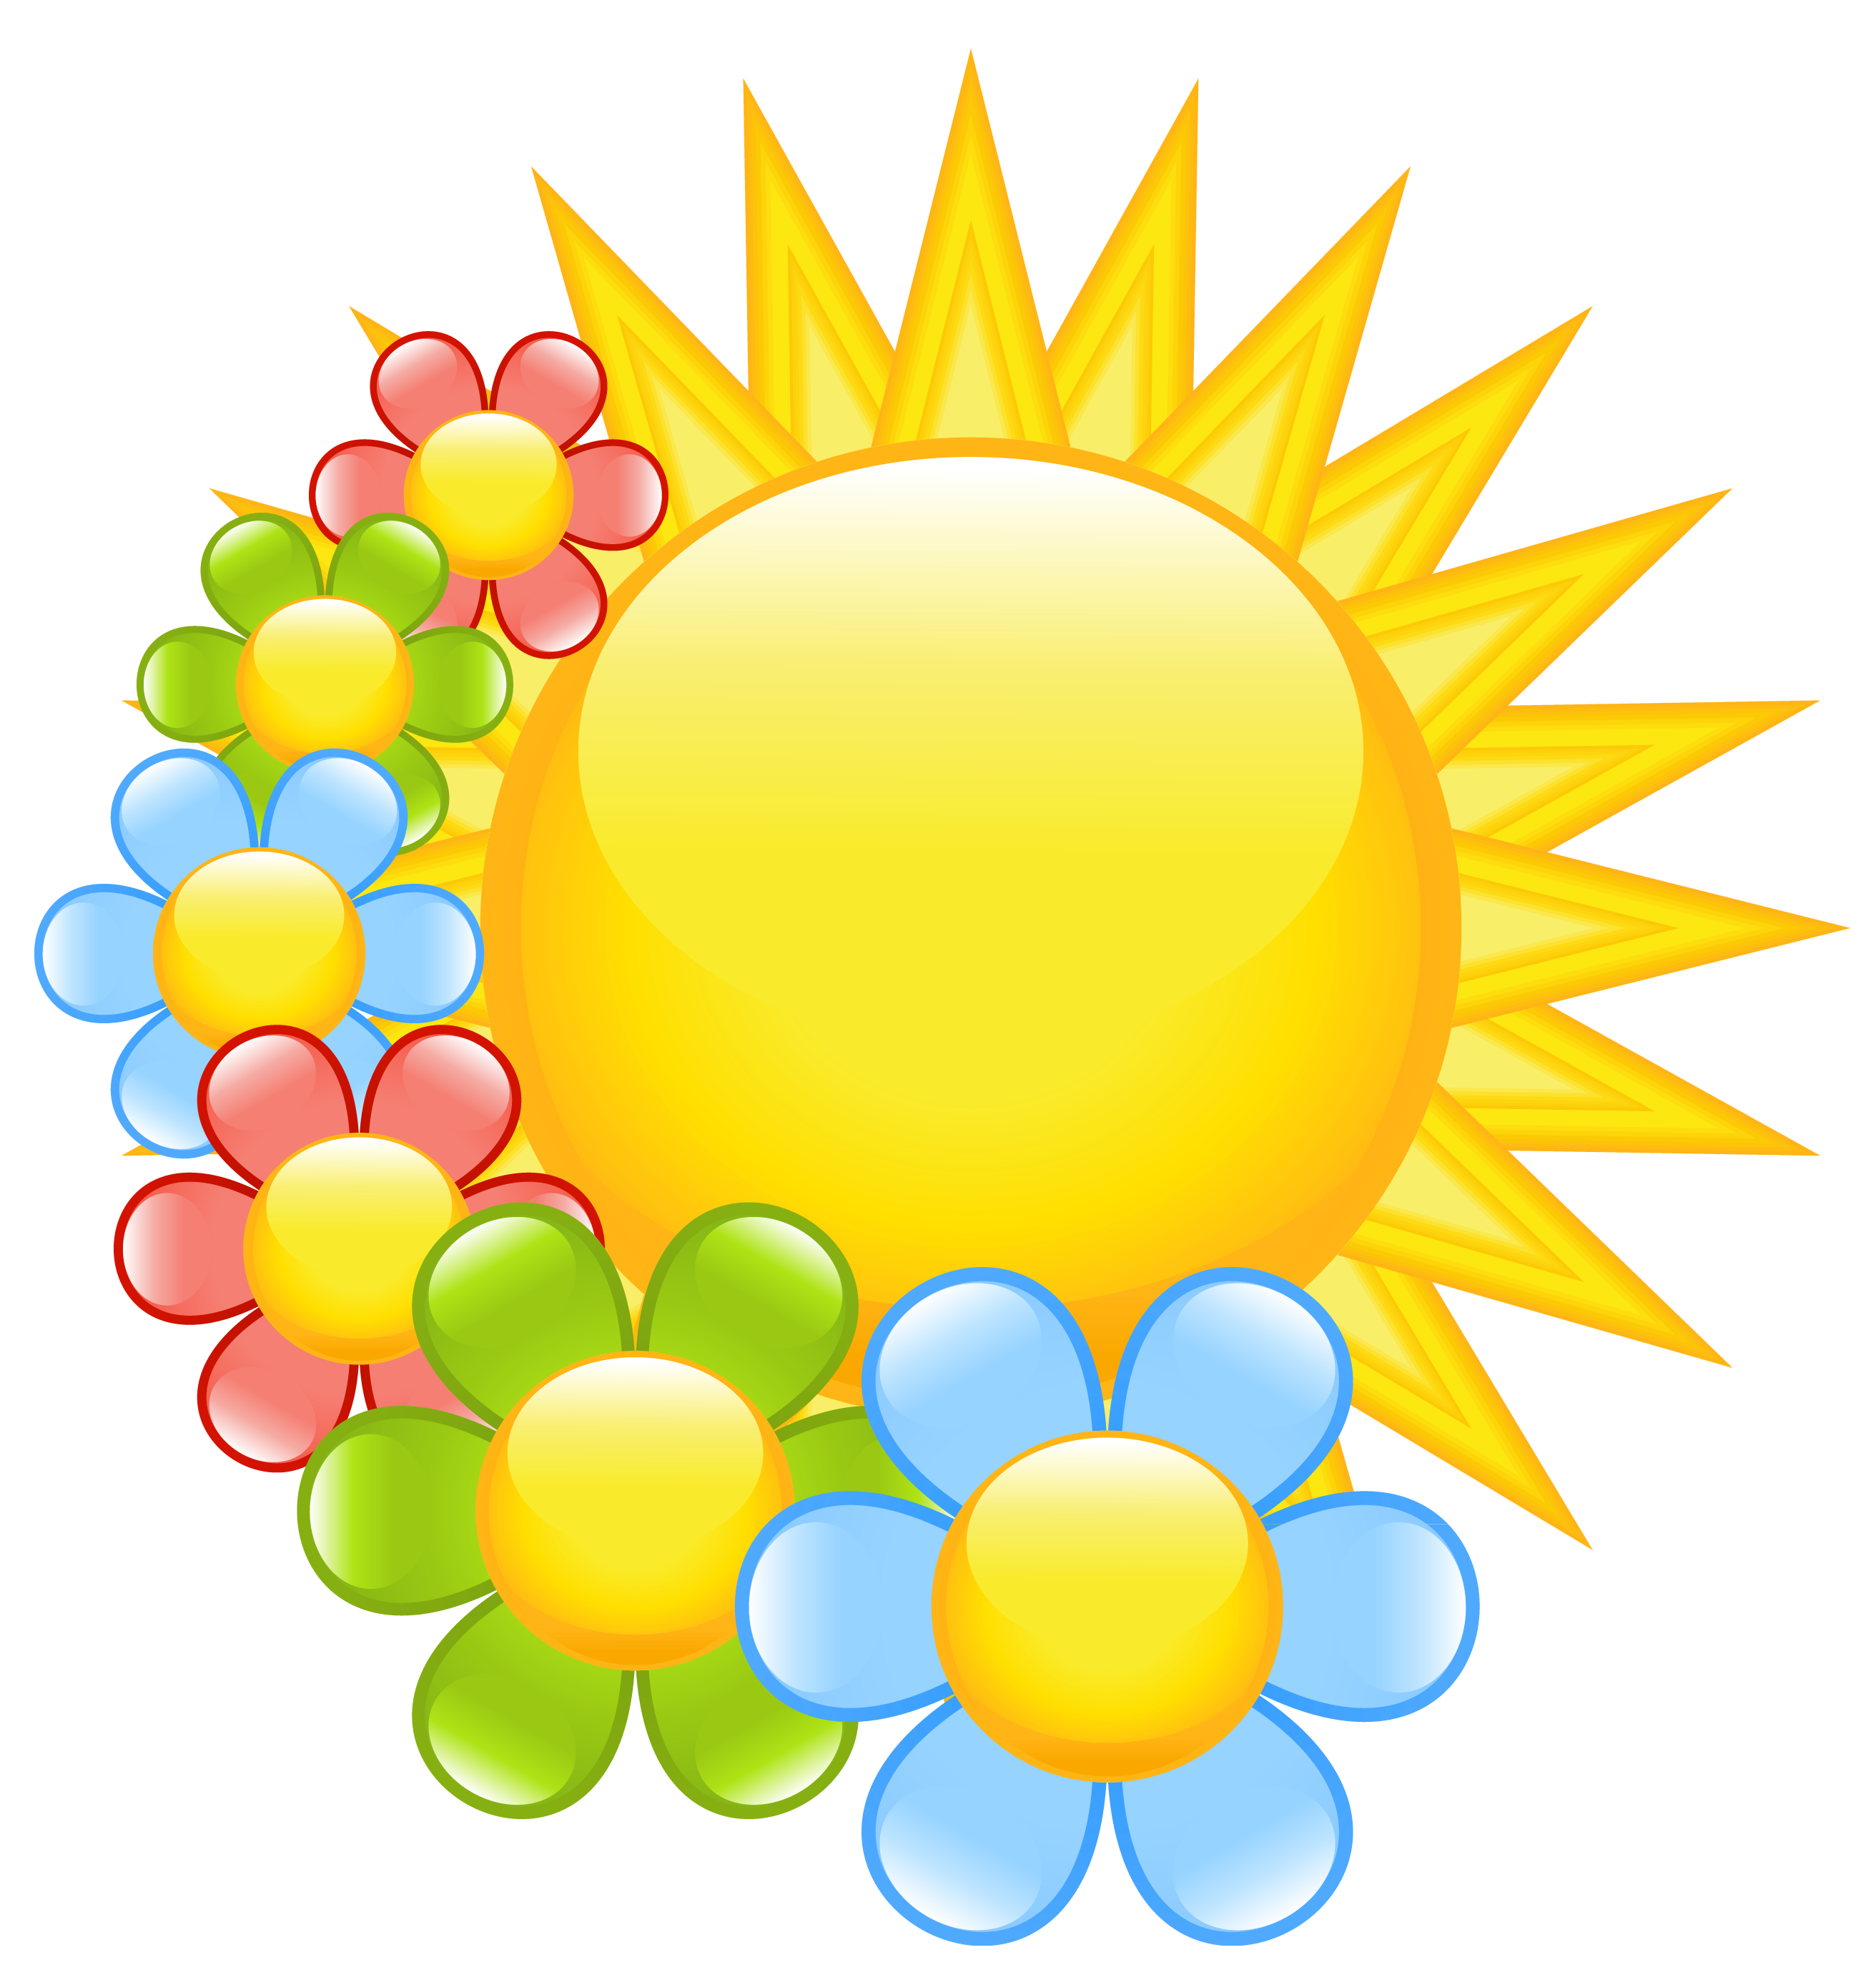 Sun with flowers gallery. Holiday clipart spring